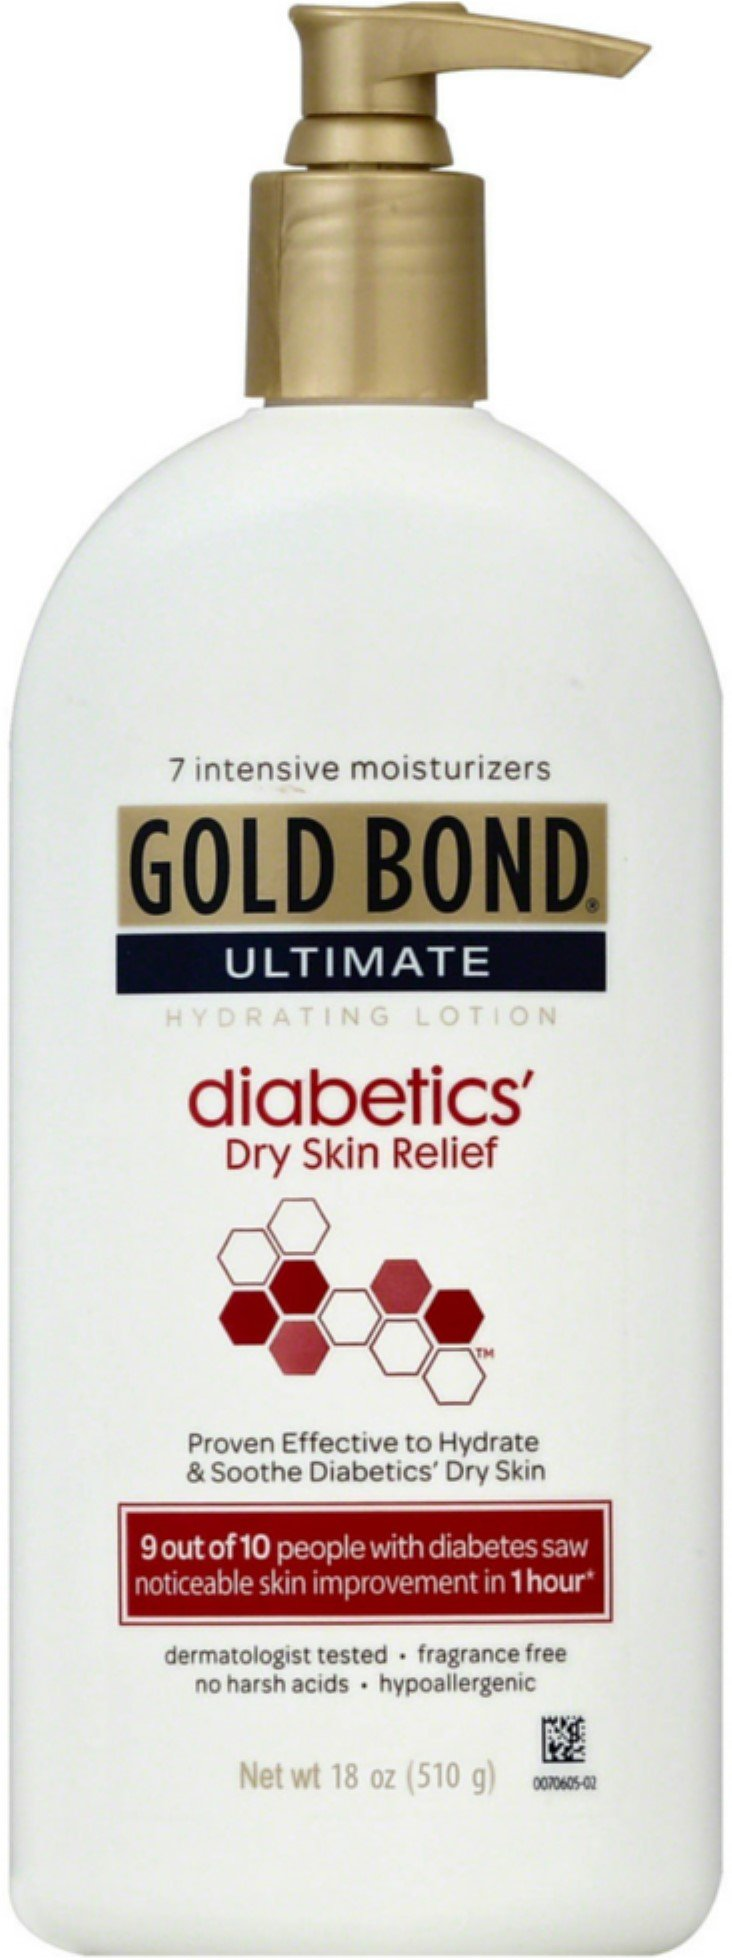 Gold Bond Ultimate Hydrating Lotion, Diabetics Dry Skin Relief 18 oz (Pack of 12) by Gold Bond